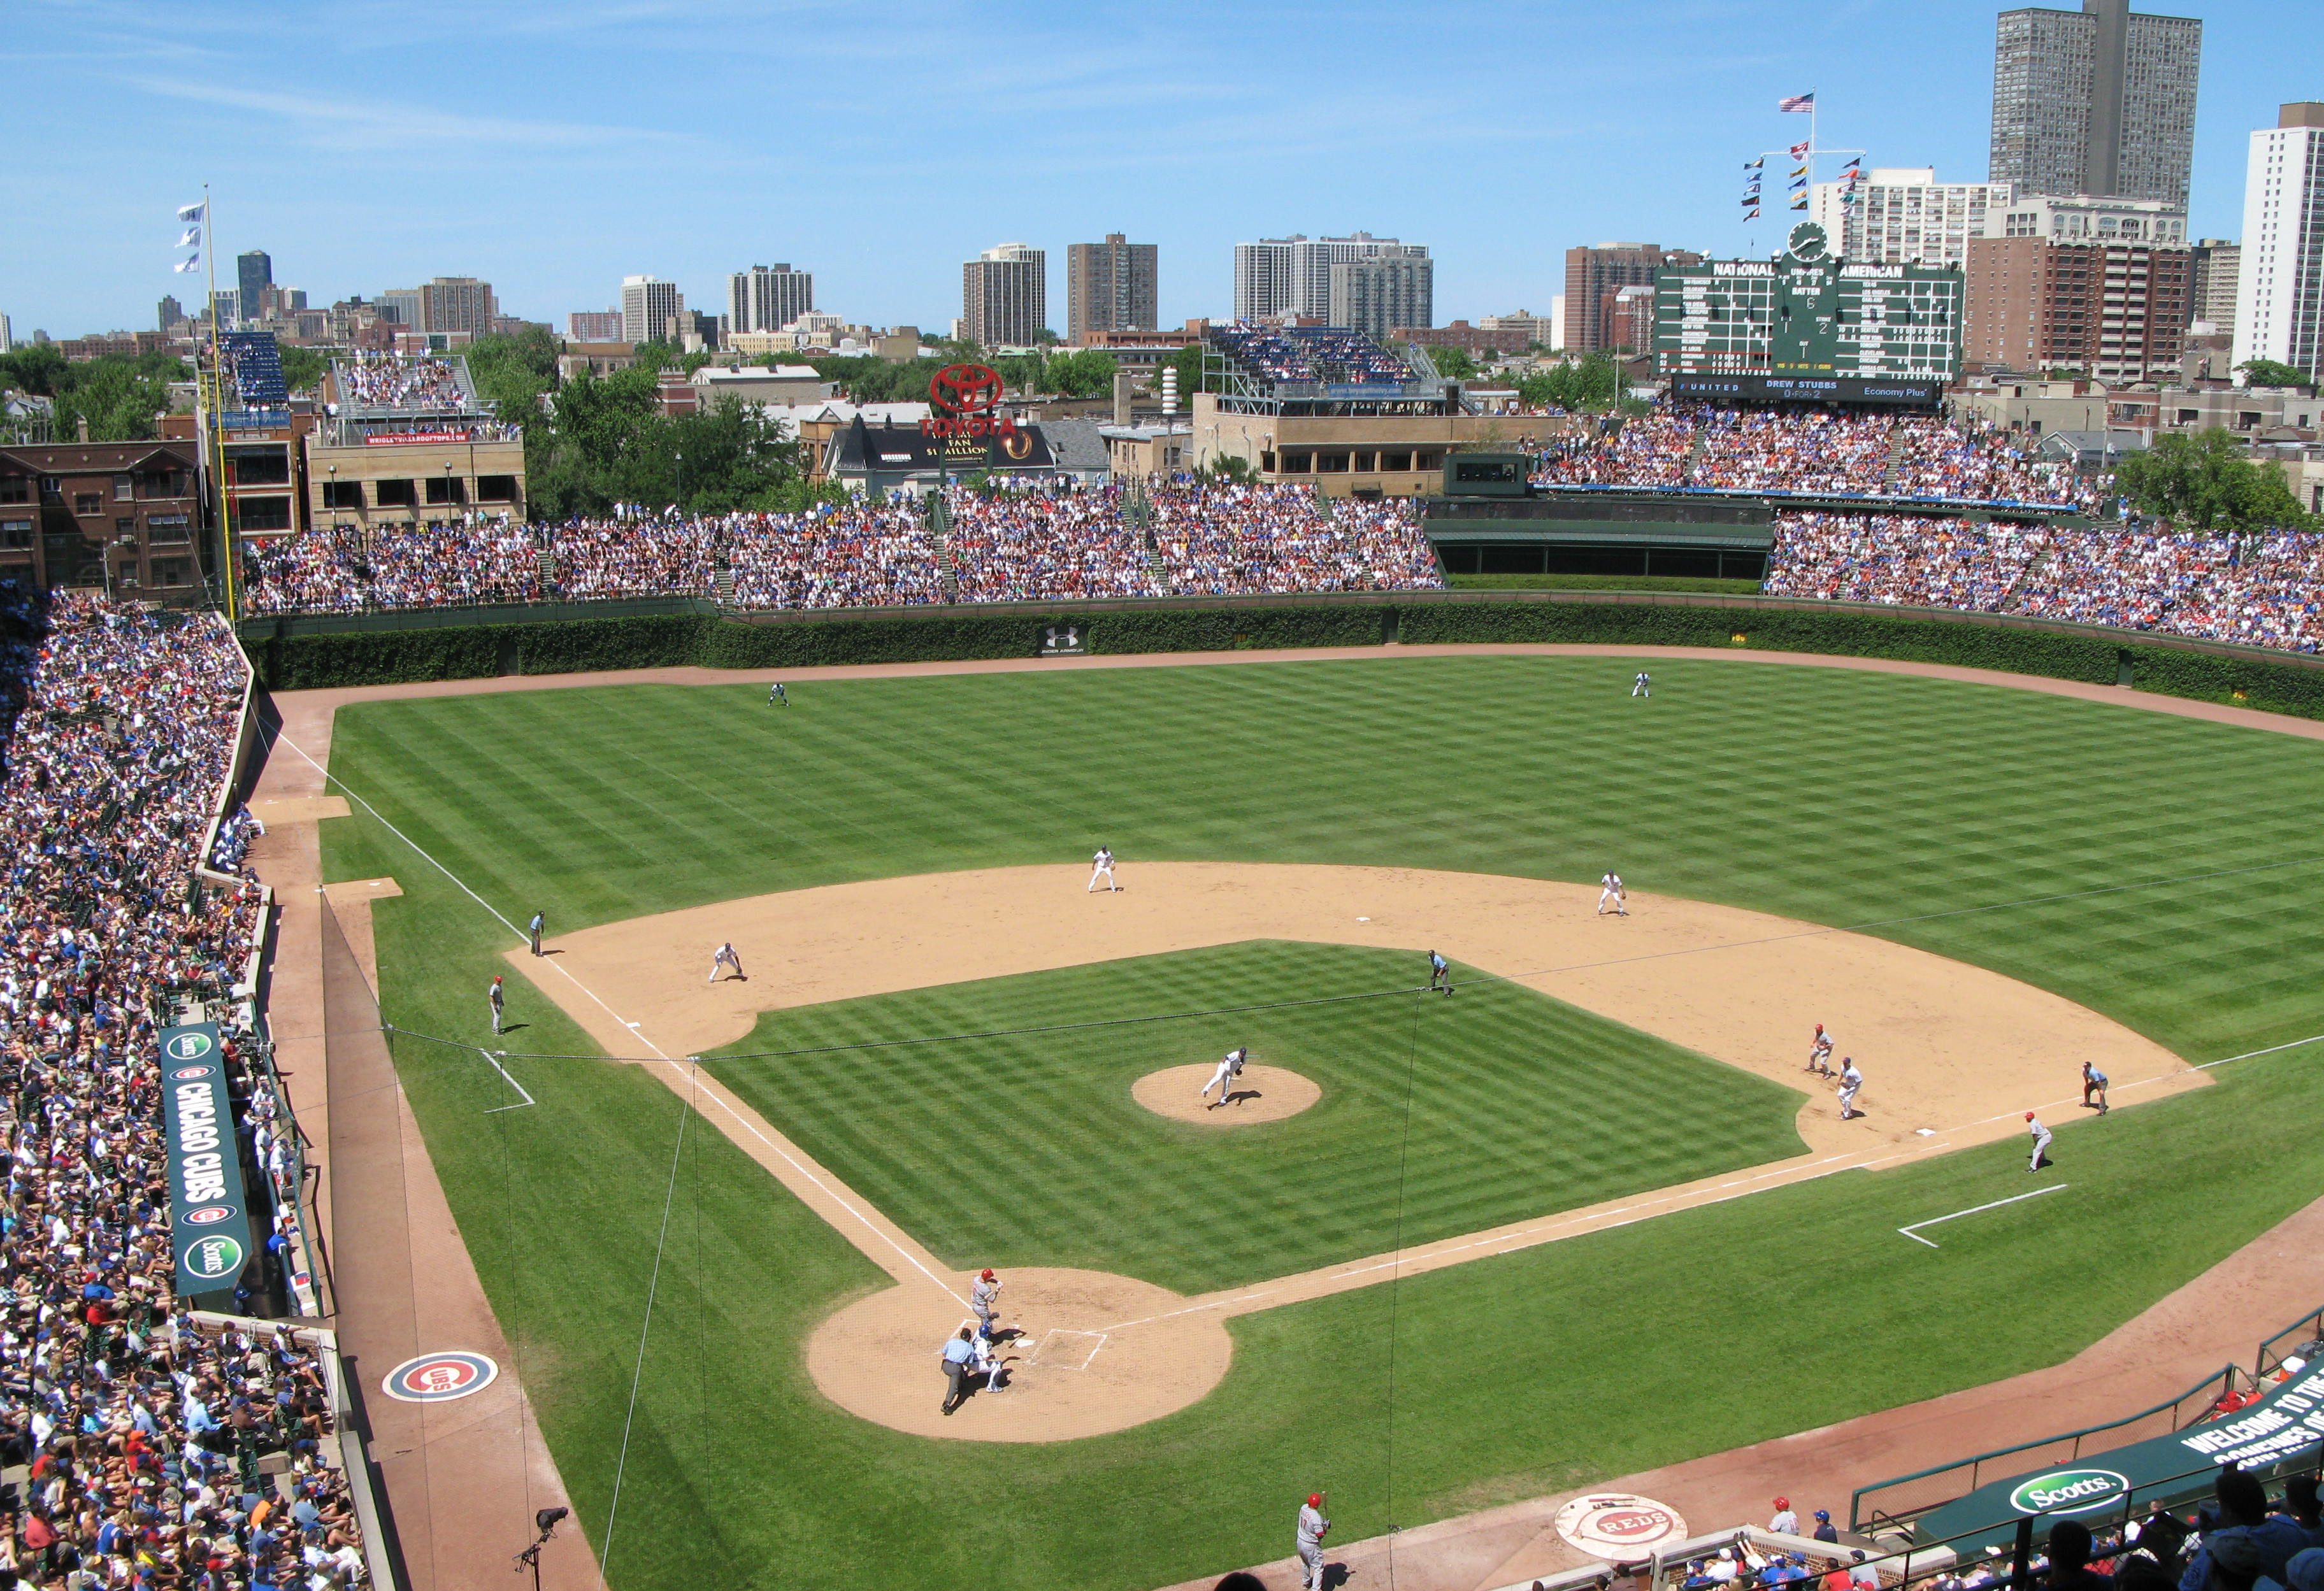 A funny thing happened on Wrigley's way to extinction. The Cubs learned to co-exist with the neighbors and the city, instituting income-sharing with rooftop owners, a bleacher expansion, and high-priced field seats.